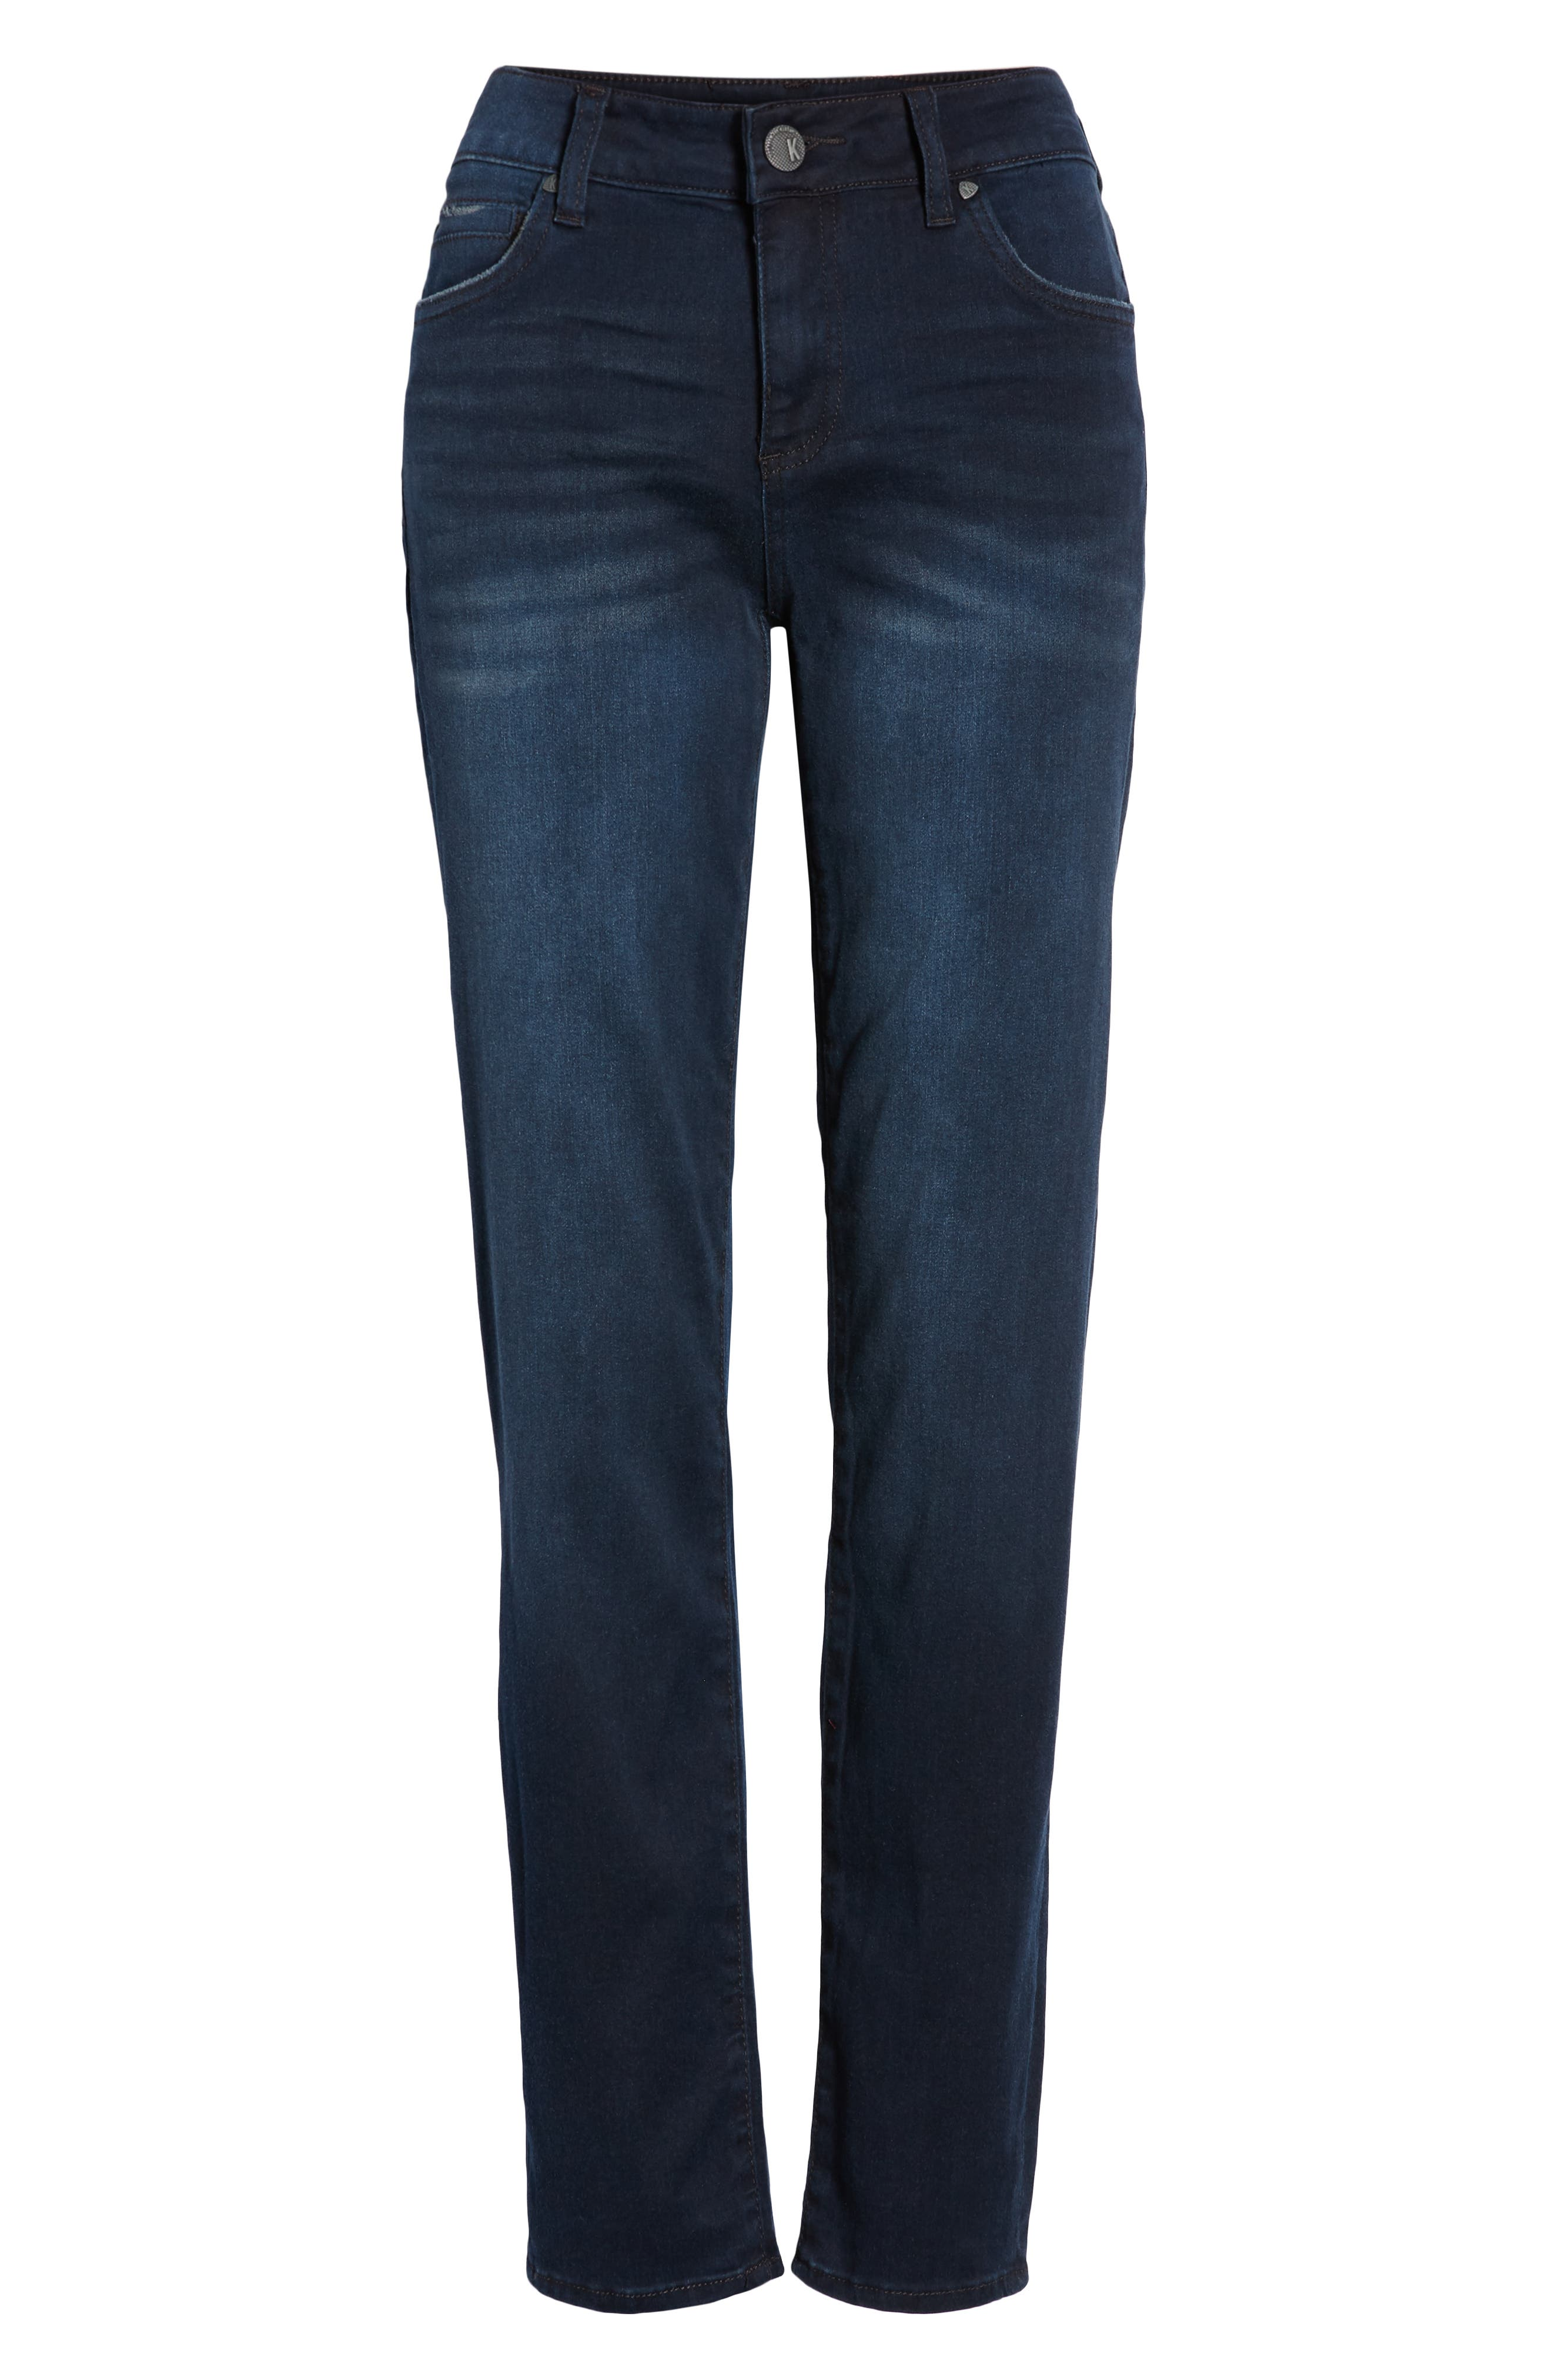 KUT FROM THE KLOTH, Diana Skinny Jeans, Alternate thumbnail 7, color, ART W/ EURO BASE WASH